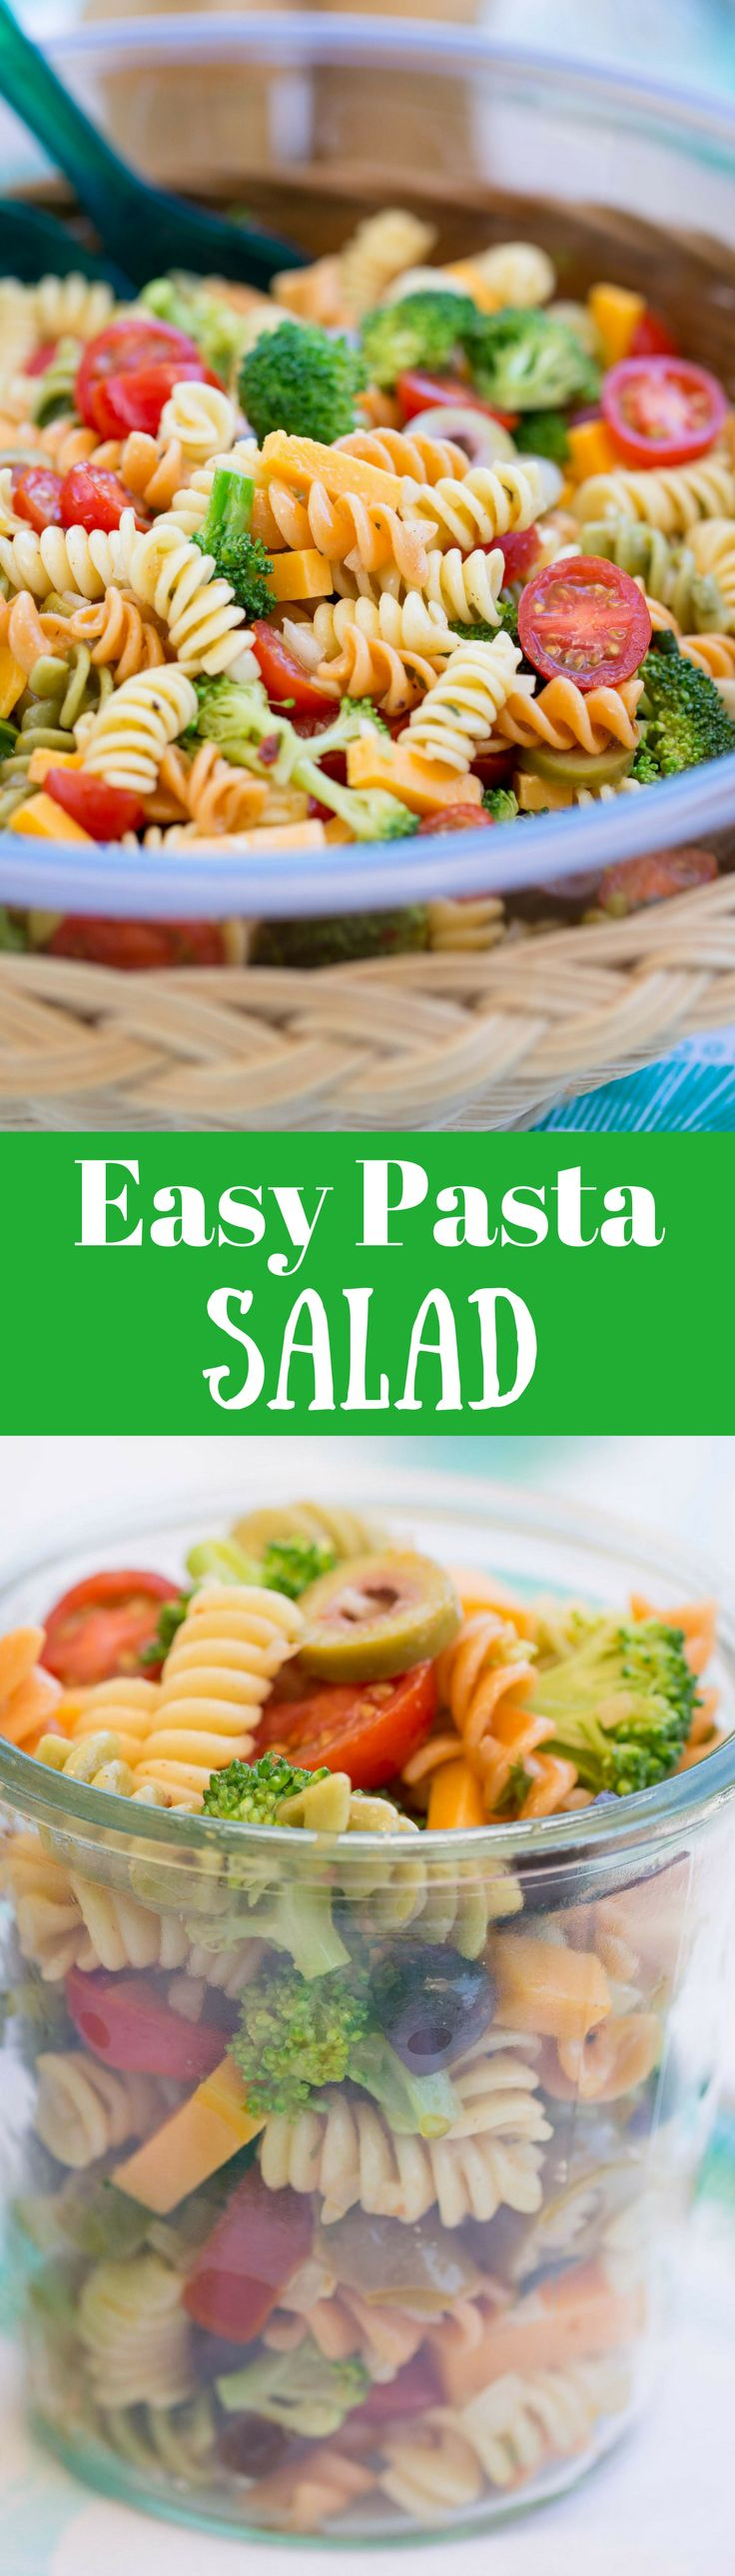 Easy Pasta Salad with Zesty Italian Dressing ~  packed with flavor and crispy fresh broccoli then marinated with a zesty Italian dressing. Leftovers are the best!   www.savingdessert.com   | easy pasta salad | pasta salad | zesty Italian dressing | summer salad | easy salad